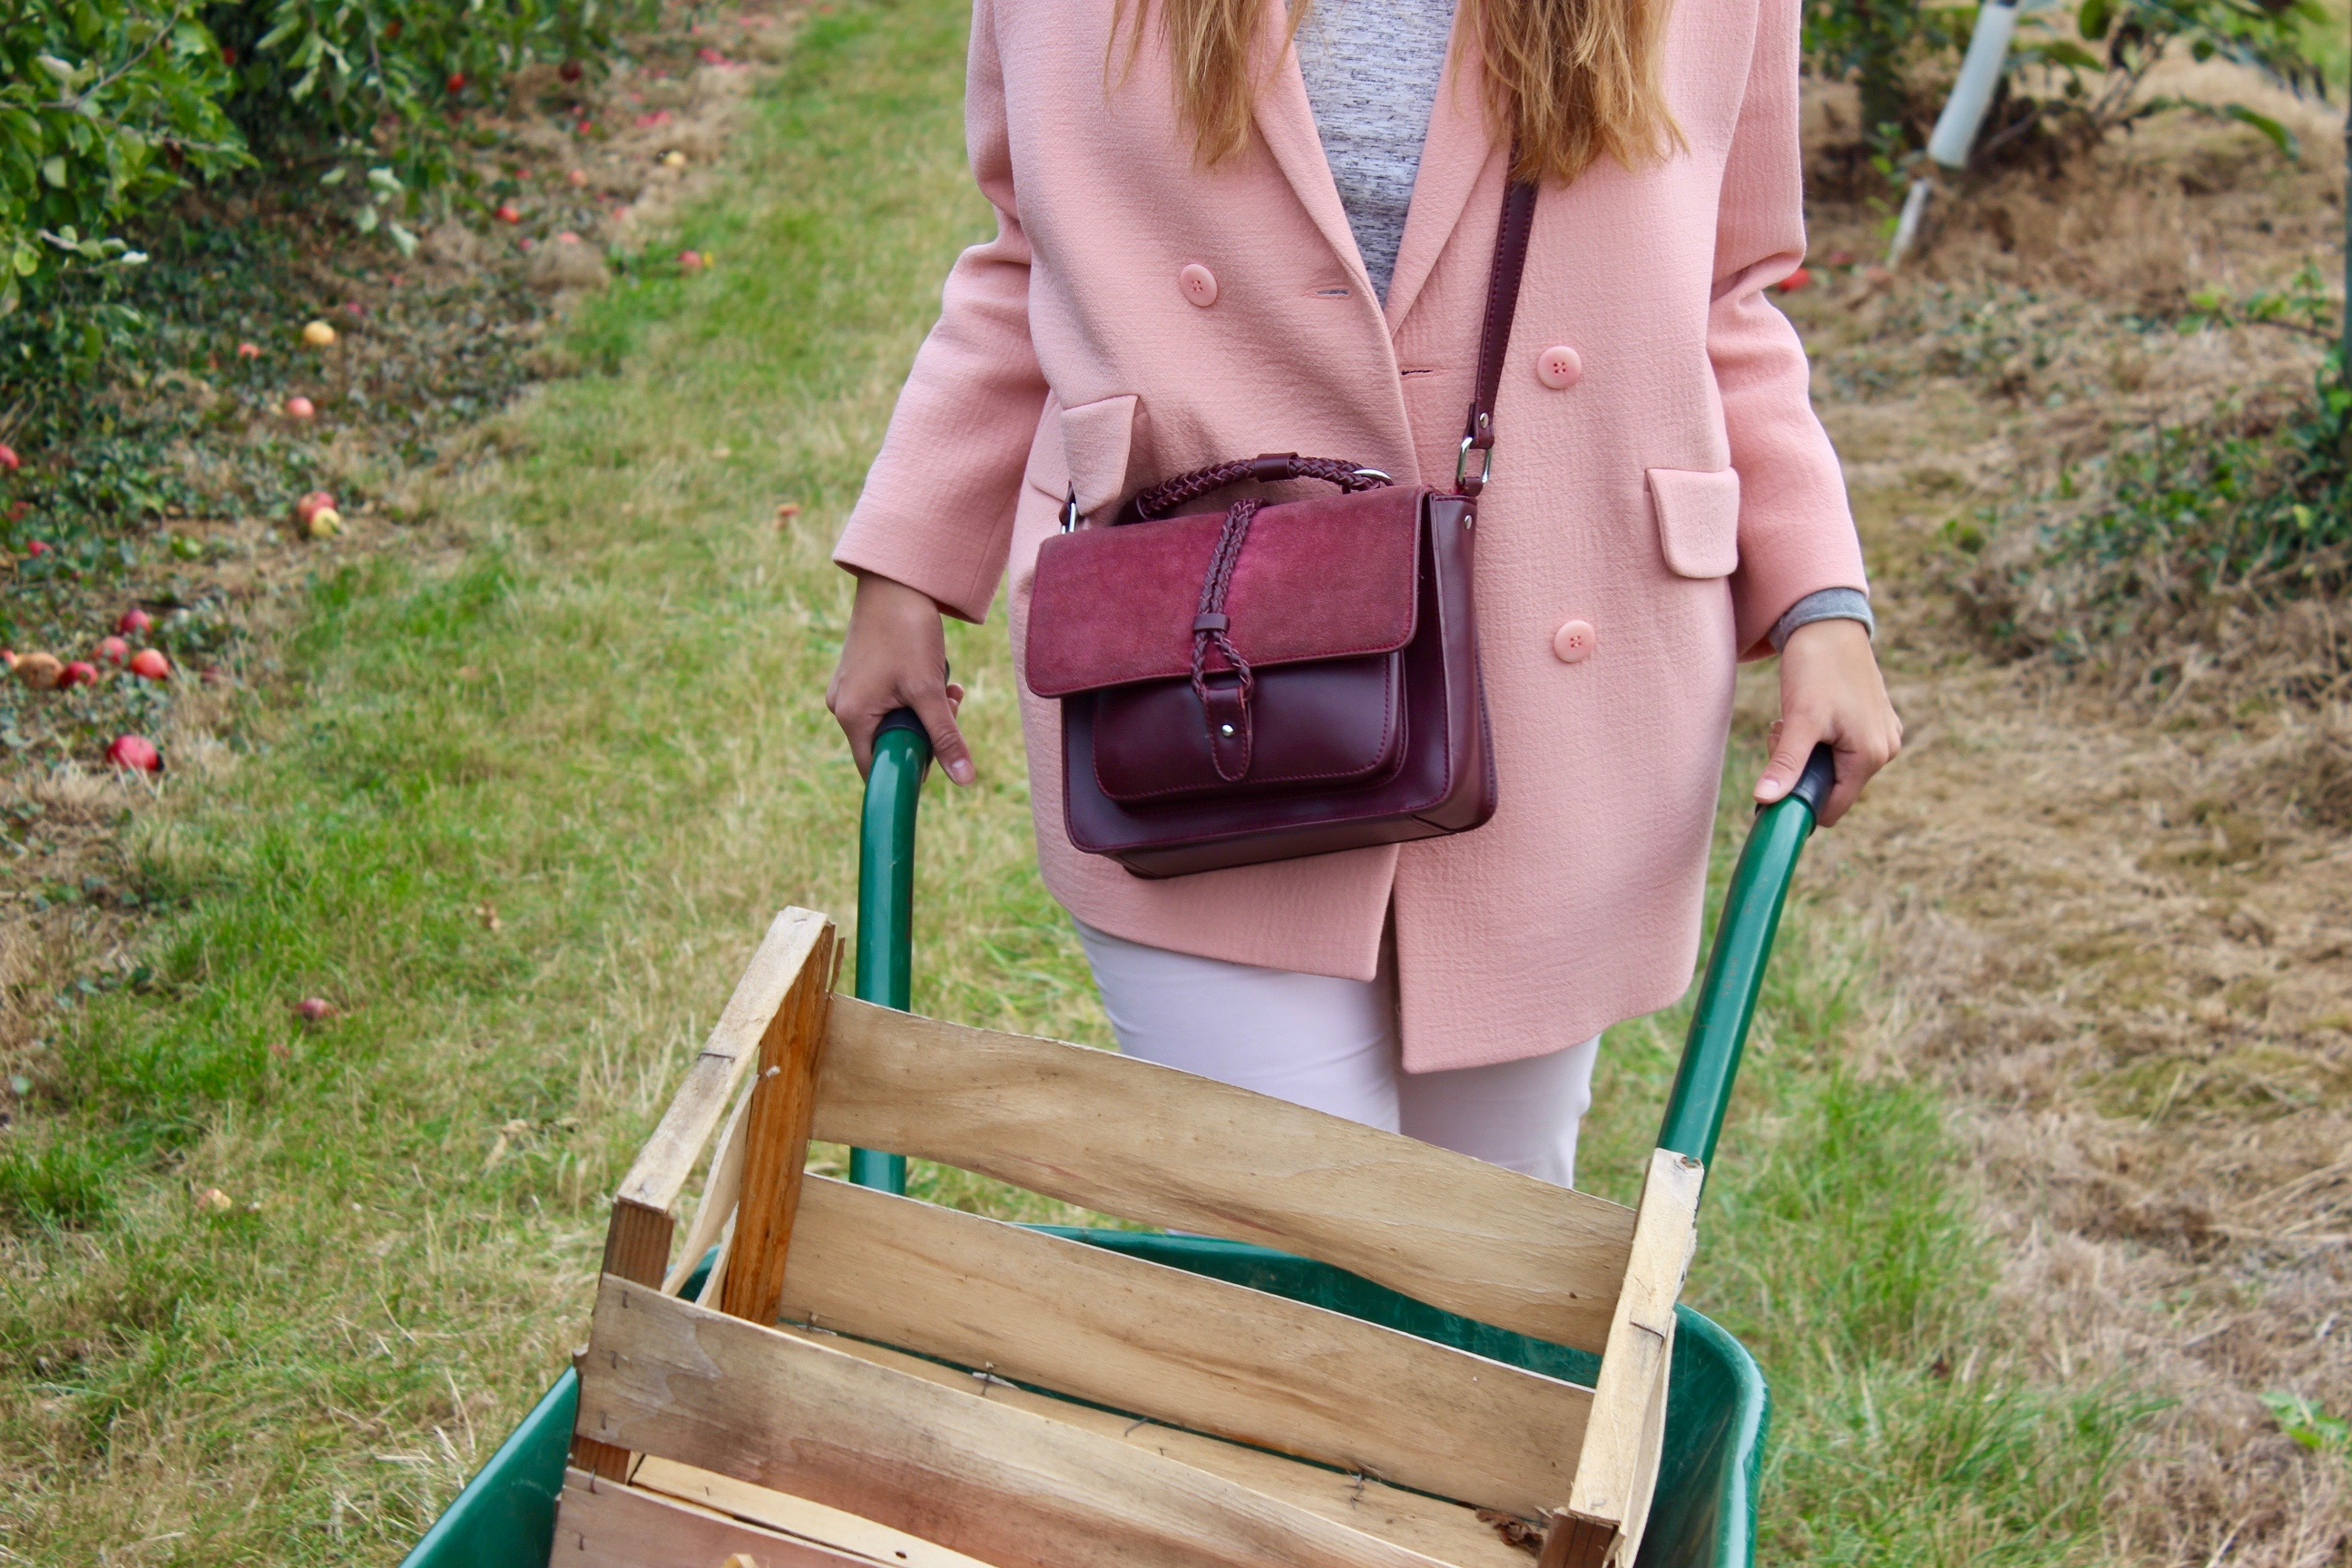 Blog-This-Kind-Of-Girl-Lifestyle-La-cueillette-a-la-ferme-du-logis/